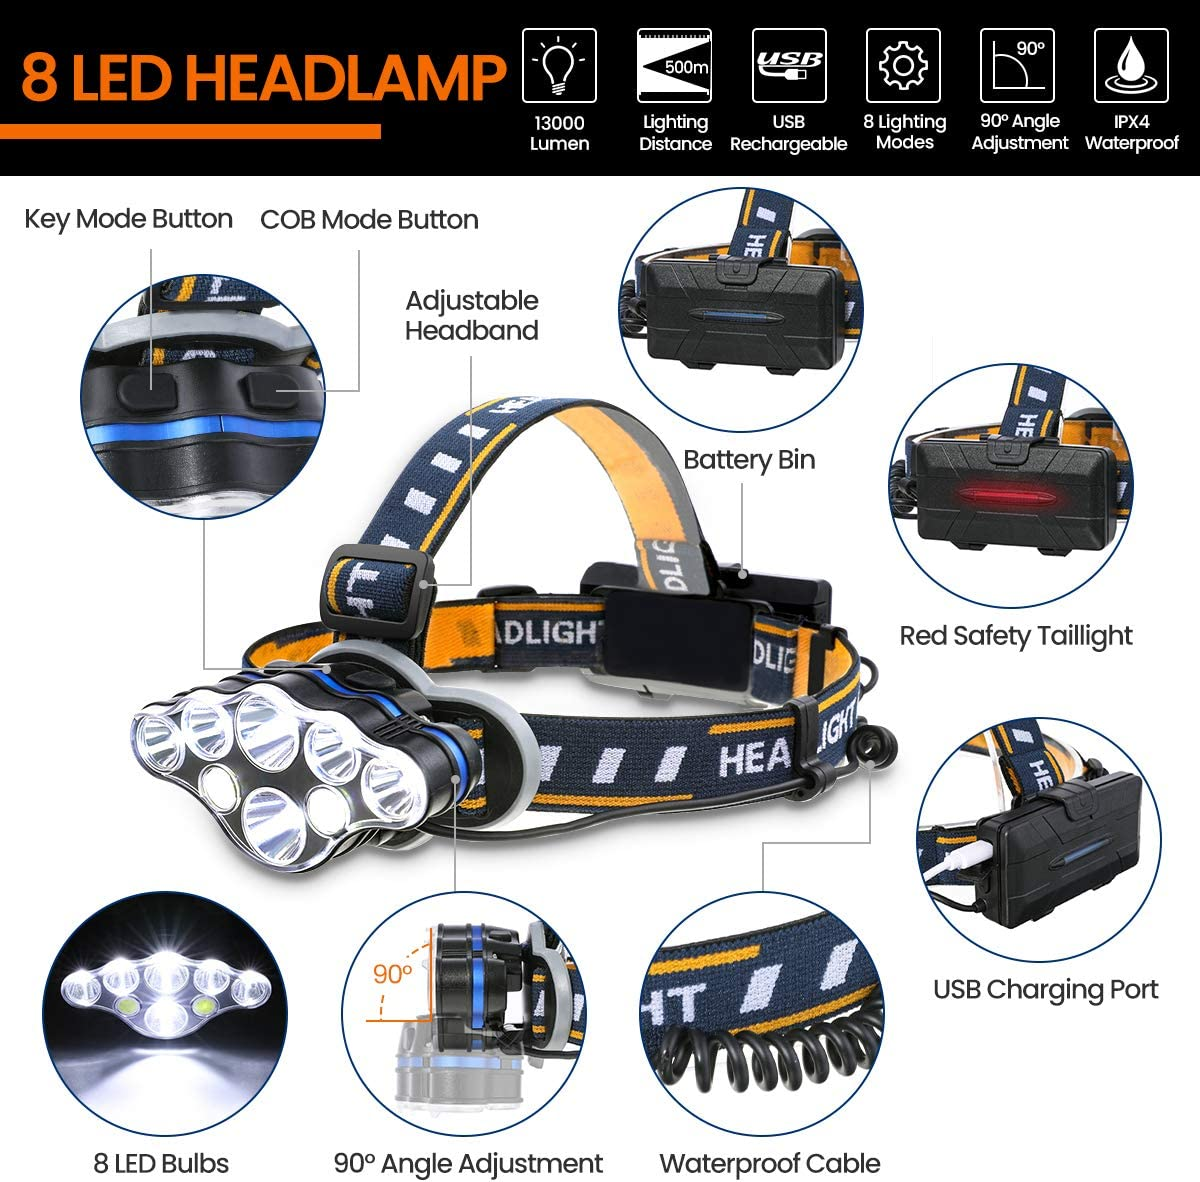 Rechargeable Headlamp, OUTERDO 8 LED Headlamp Flashlight 13000 Lumens 8 Modes with USB Cable 2 Batteries, Waterproof LED Head Torch Head Light with Red Light for Camping Fishing, Car Repair, Outdoor - -